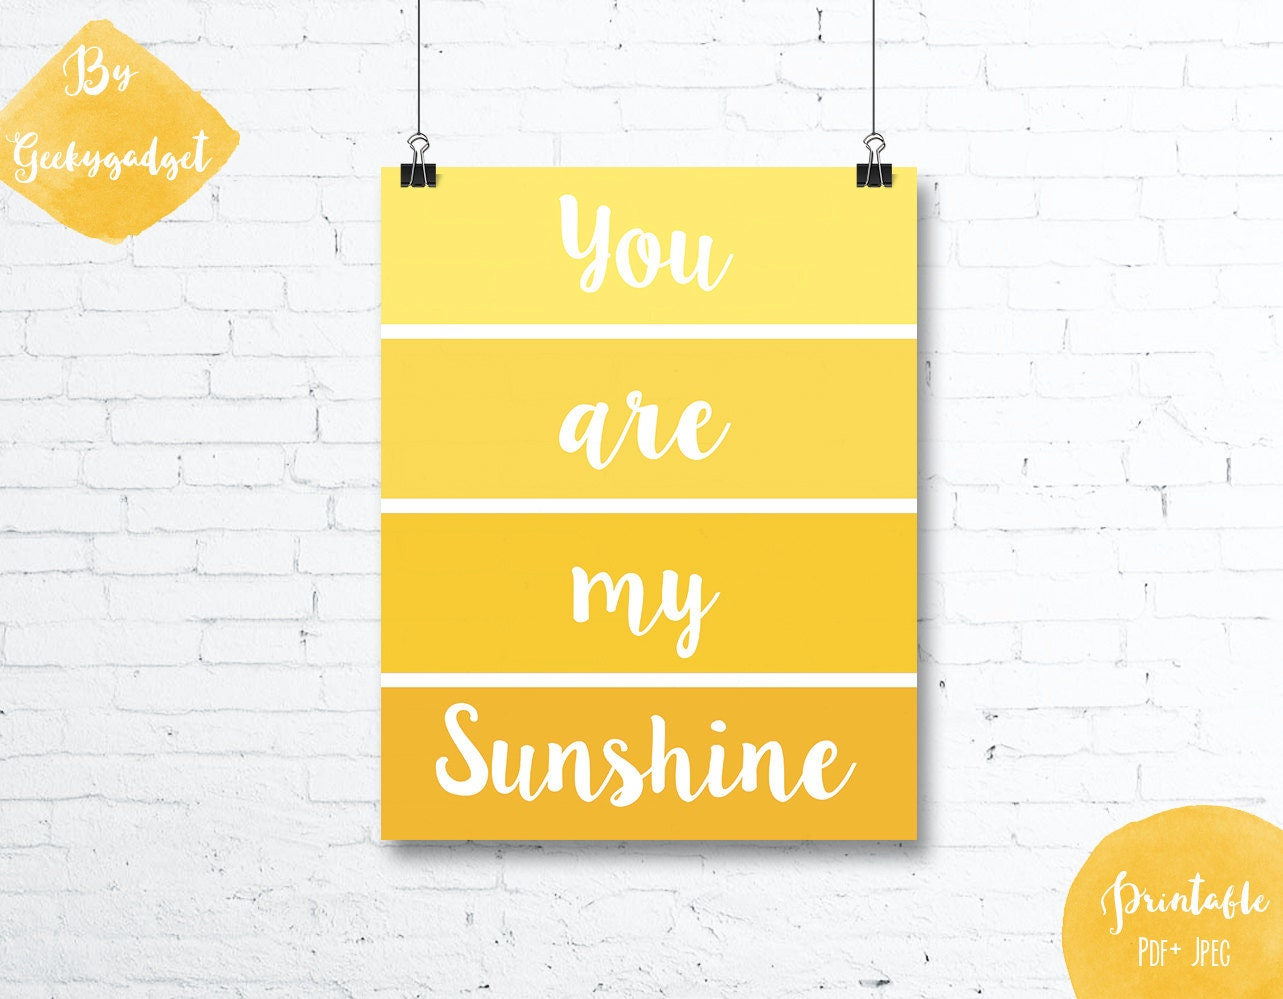 You are my sunshine paint chip yellow nursery poster quote | Etsy